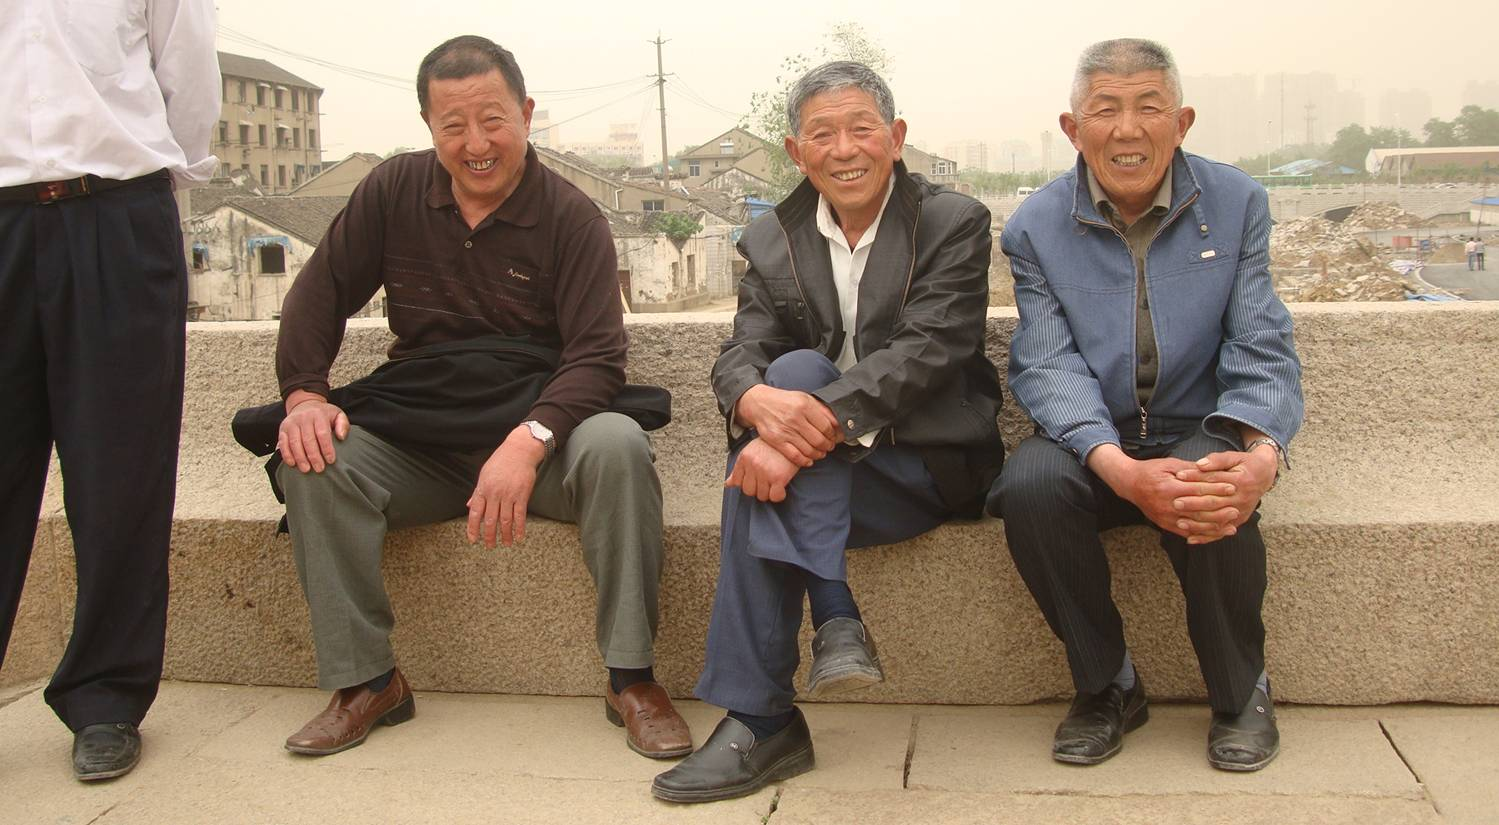 Picture:  Three gentlemen on the nicely designed bench on the bridge over the canal.  I didn't have the nerve to ask them to take the three monkies pose, though it would have made a great fun picture, just possibly insulting and racist.  Wuxi, China